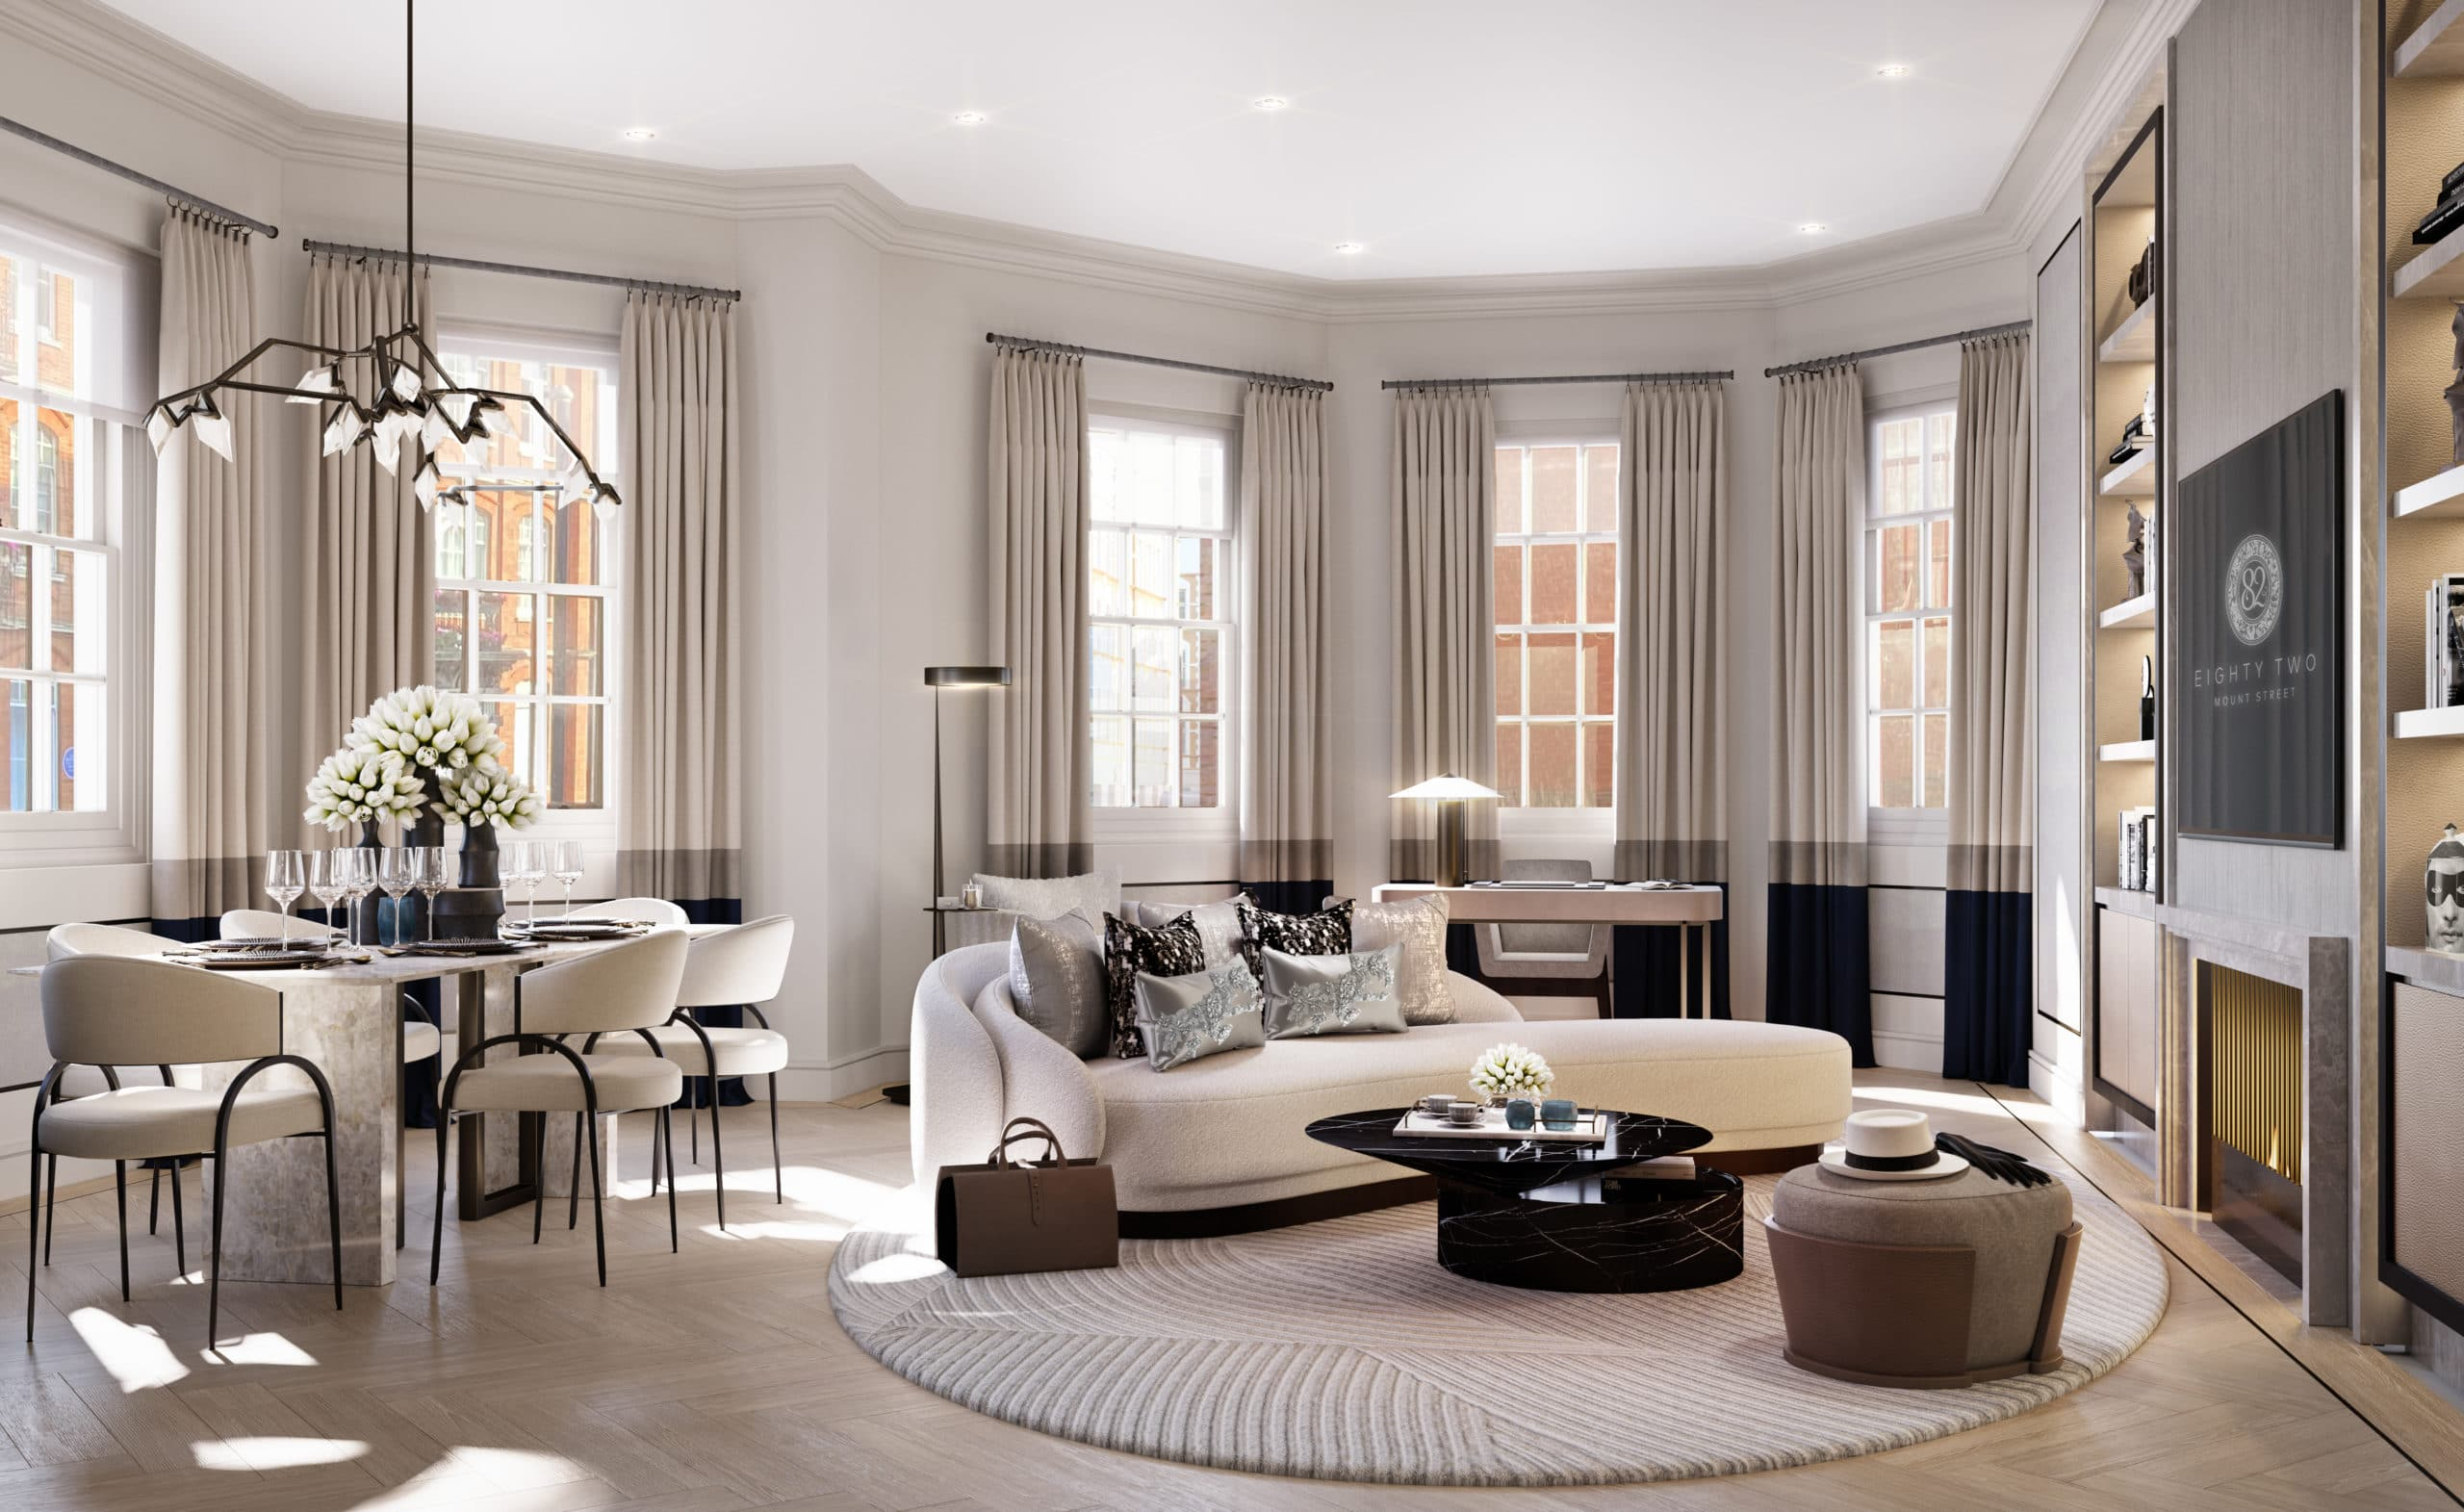 Living room at 82 Mount Street apartments in London. Open room with high ceilings, furniture, fireplace, and dining table.